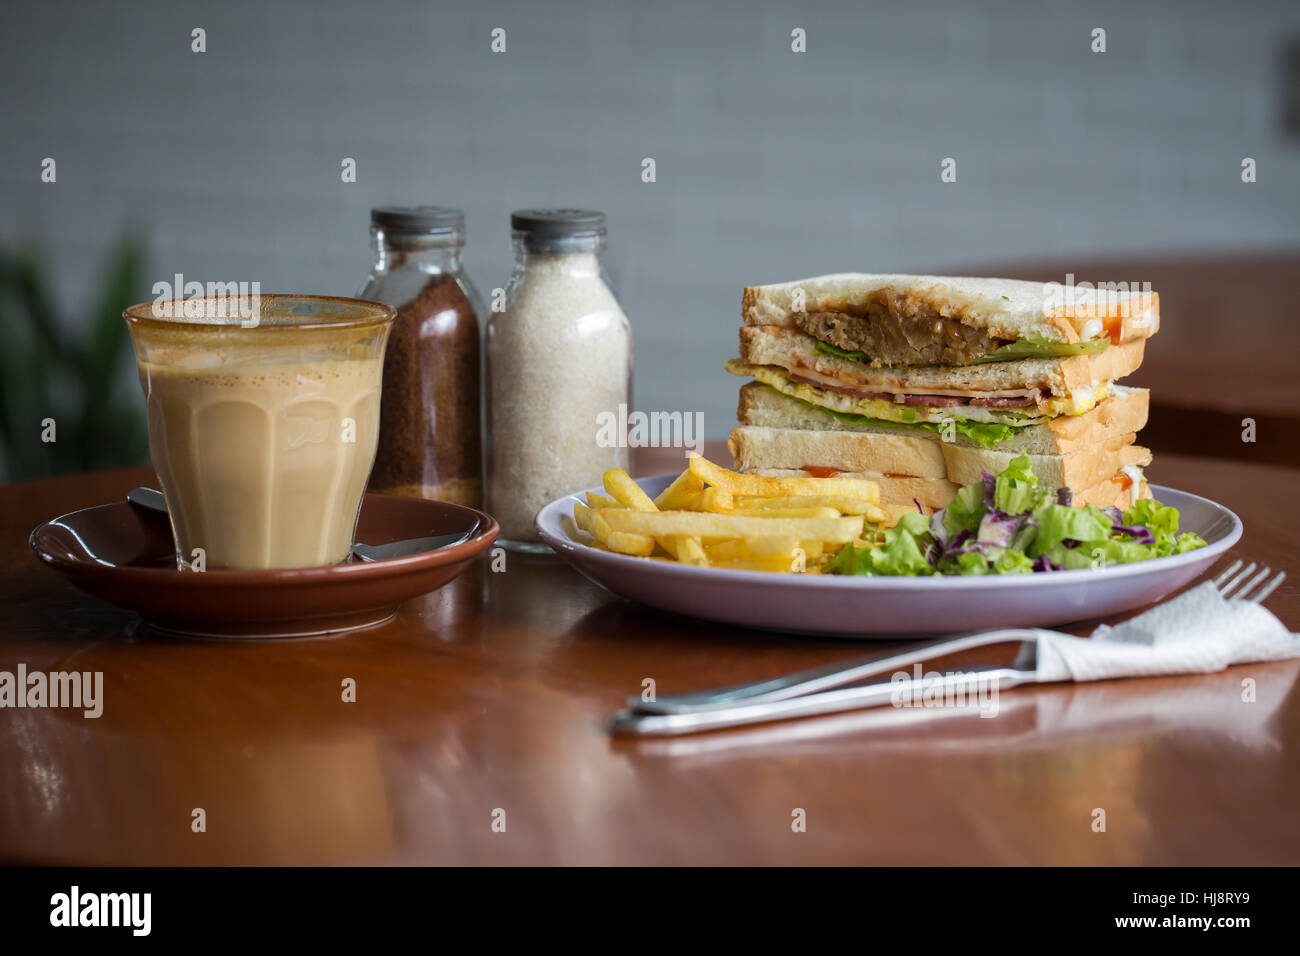 Breakfast club sandwich and coffee - Stock Image